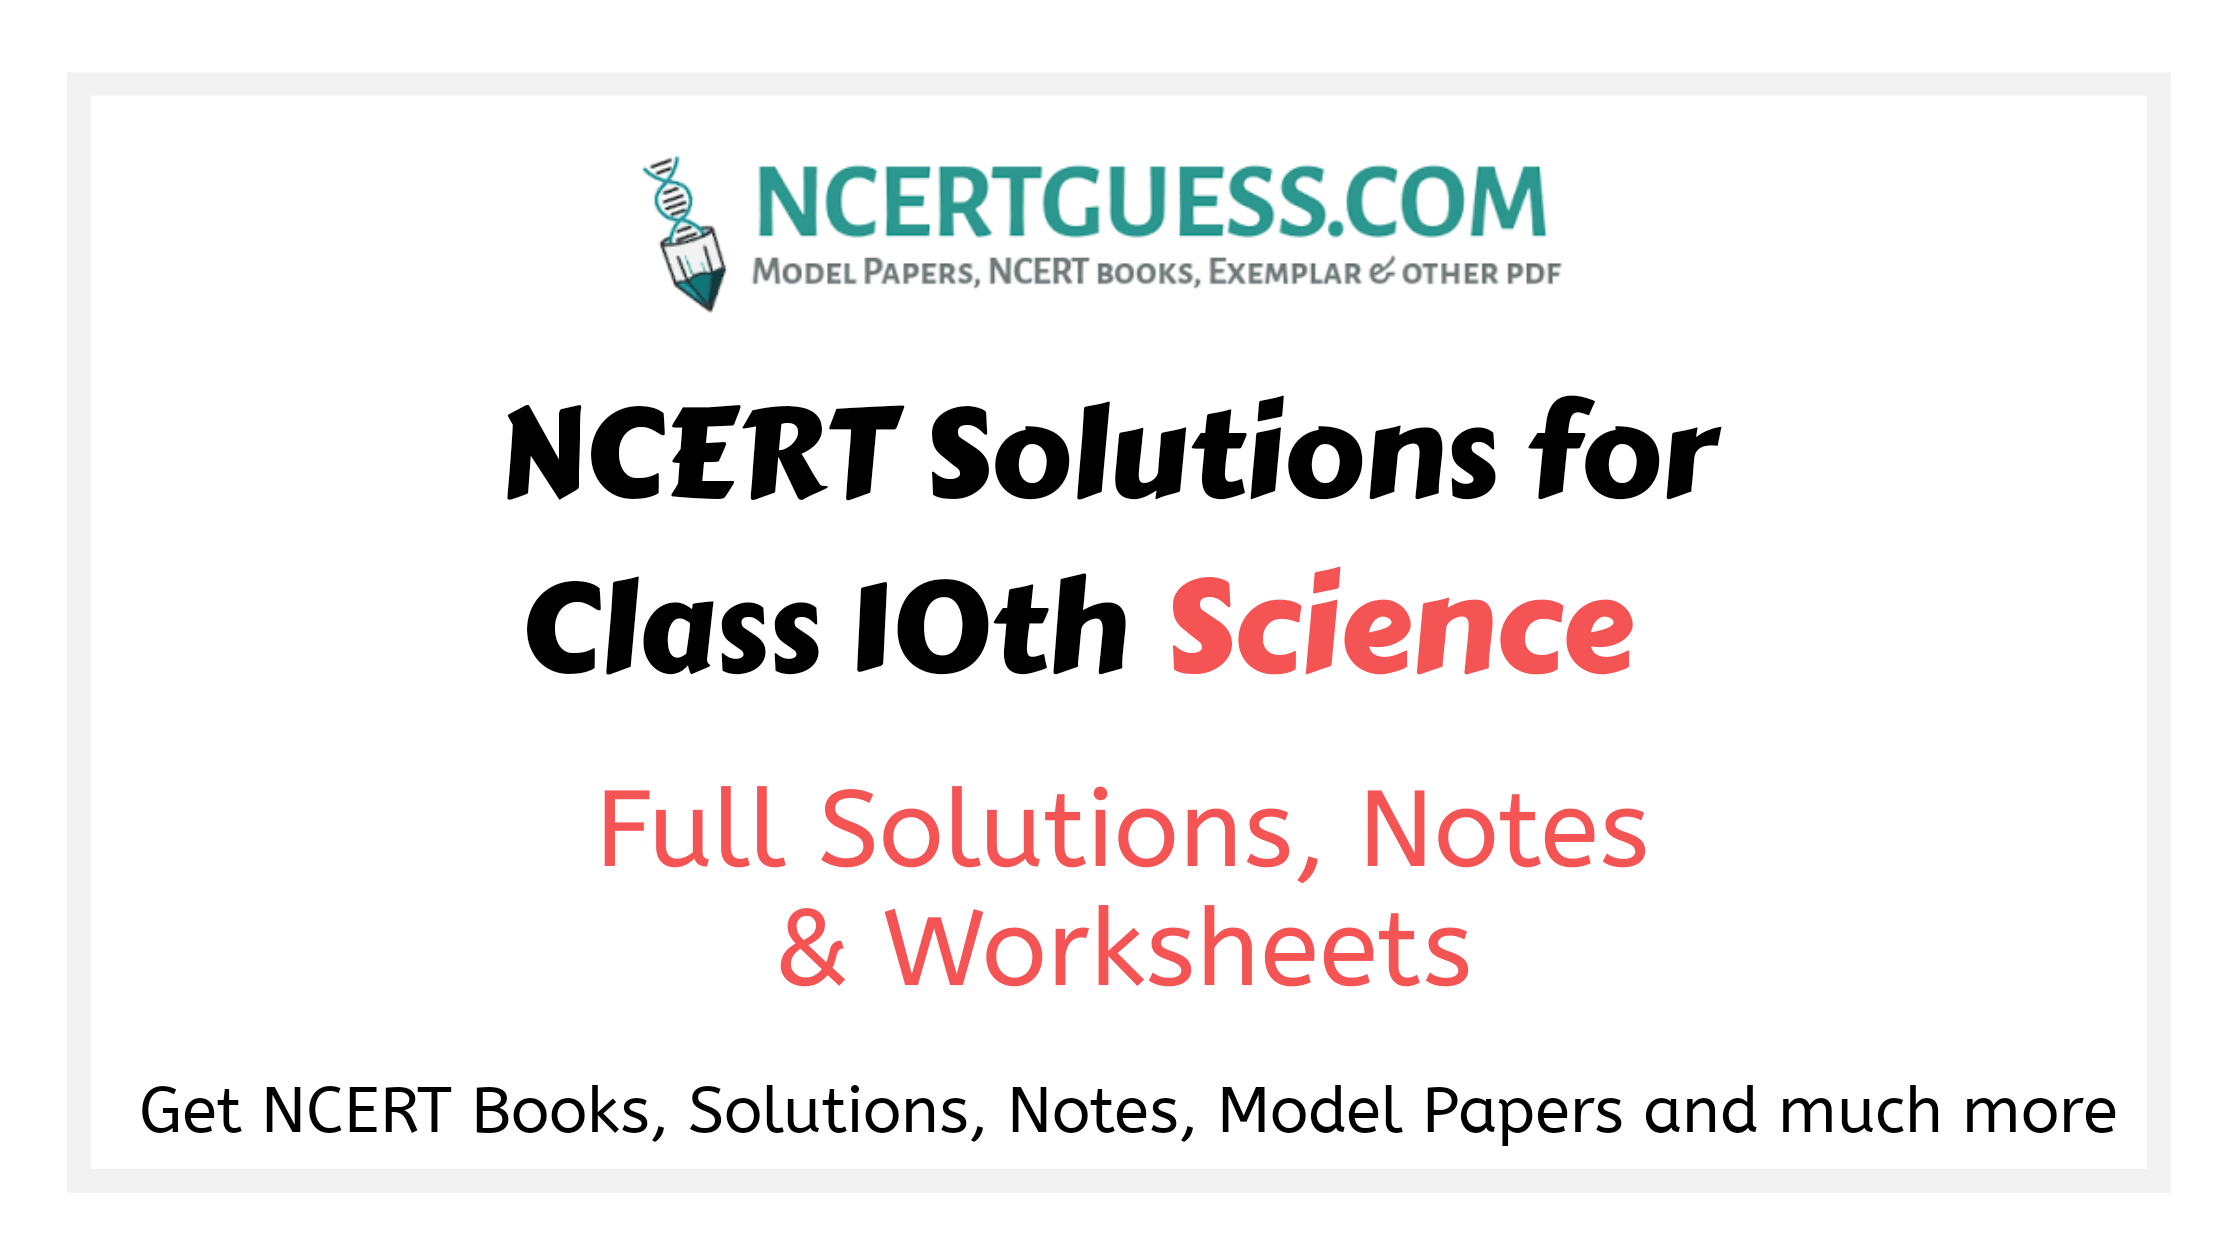 Ncert solutions class 10th science